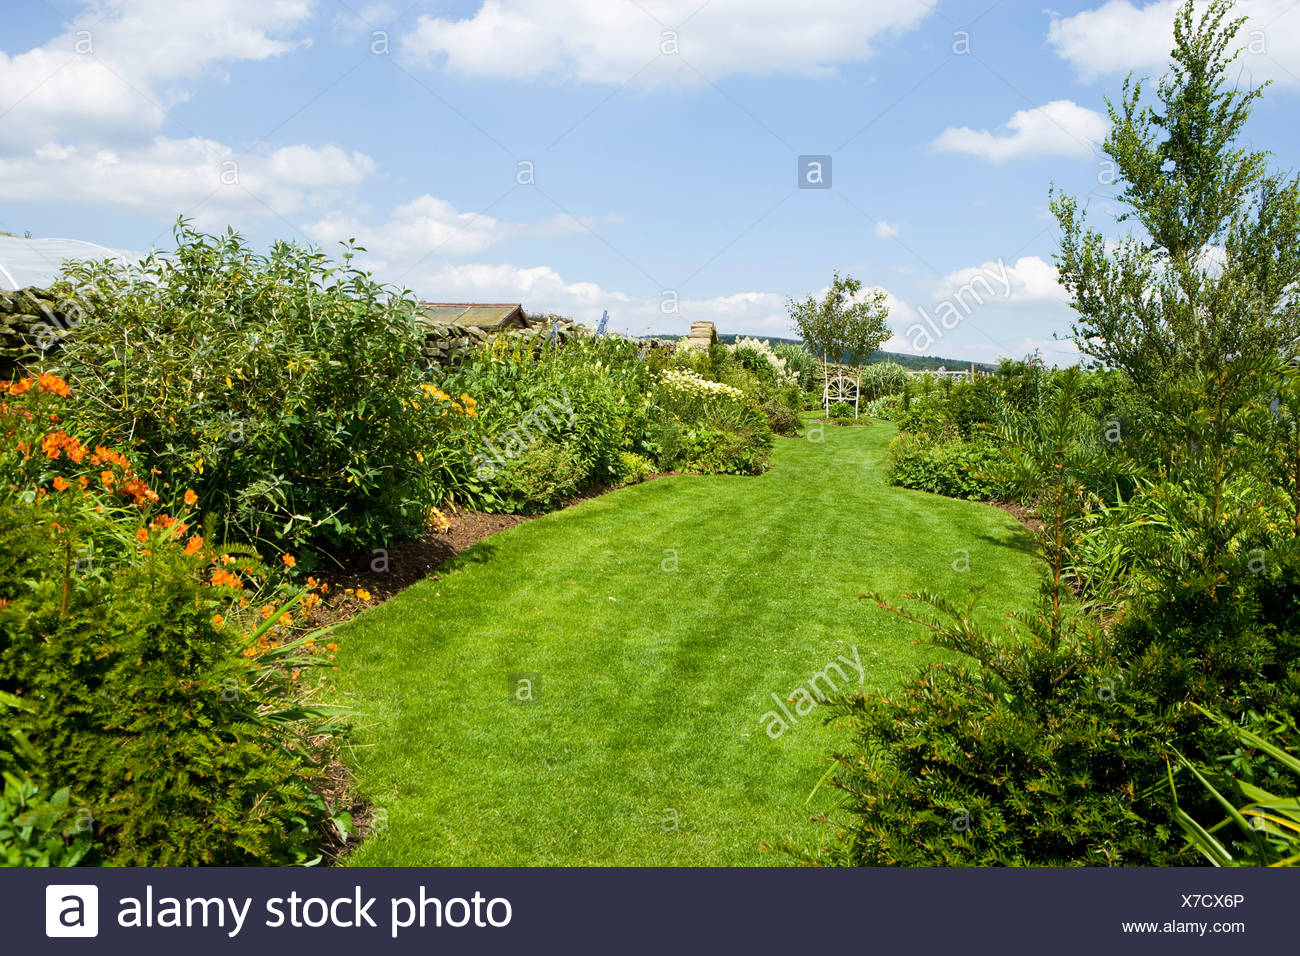 a windswept country garden with borders and beds. - Stock Image